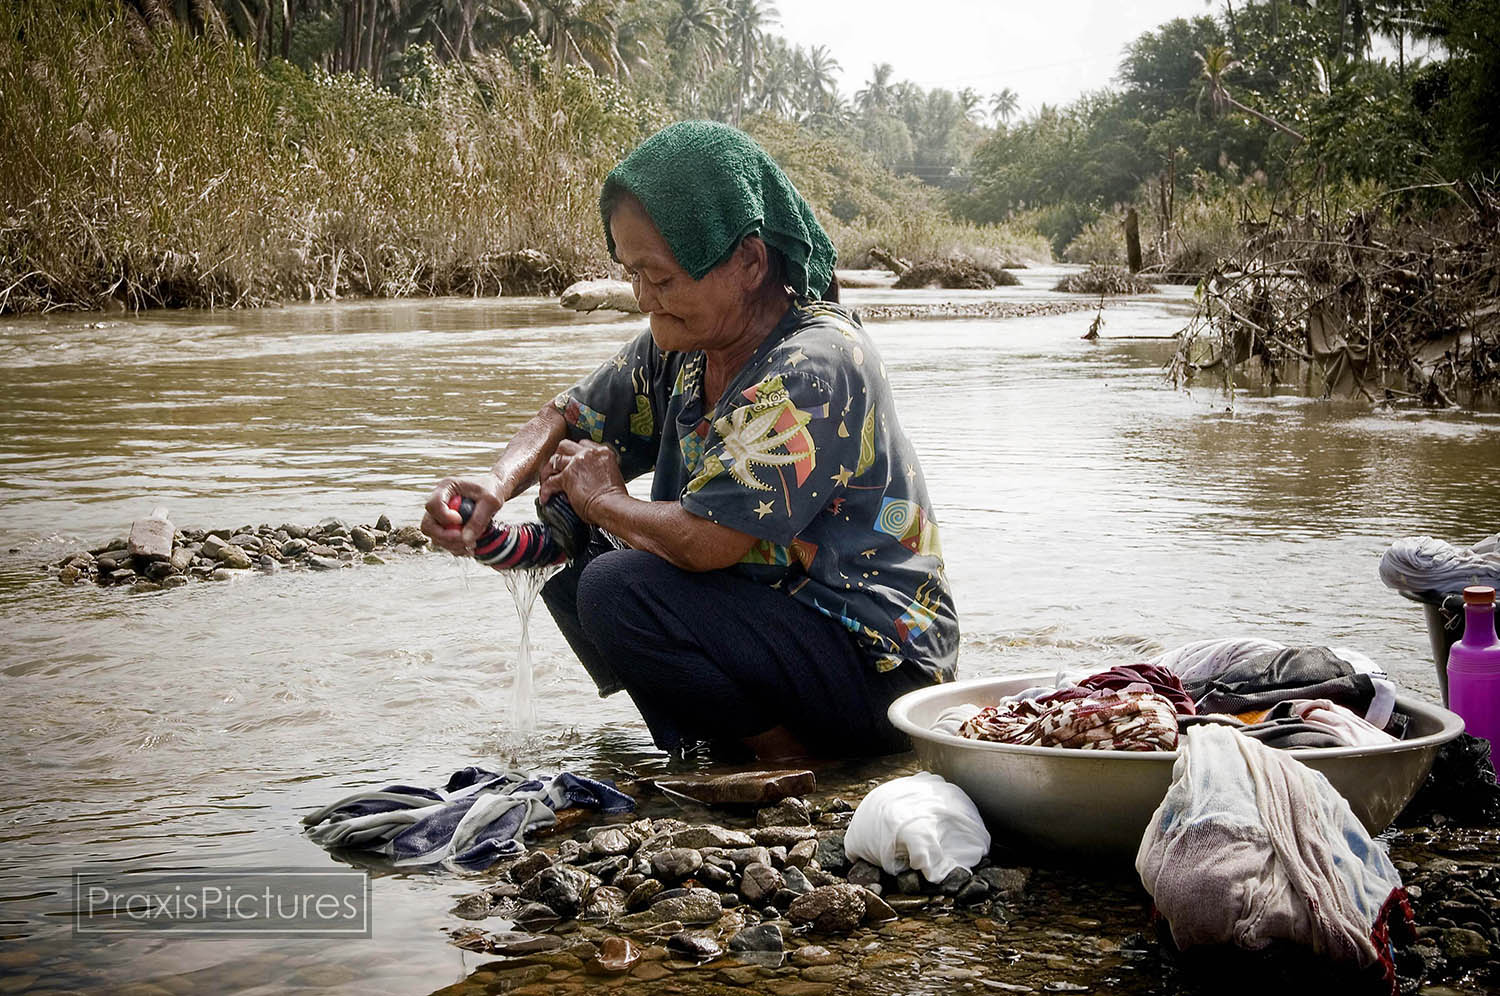 Remy washes her laundry in the poisoned Mogpog River in Marinduque. With the two main rivers on the small island now biologically dead and containing dangerous levels of toxic chemicals, many of the residents of the island are left with no safe water supply to rely on.